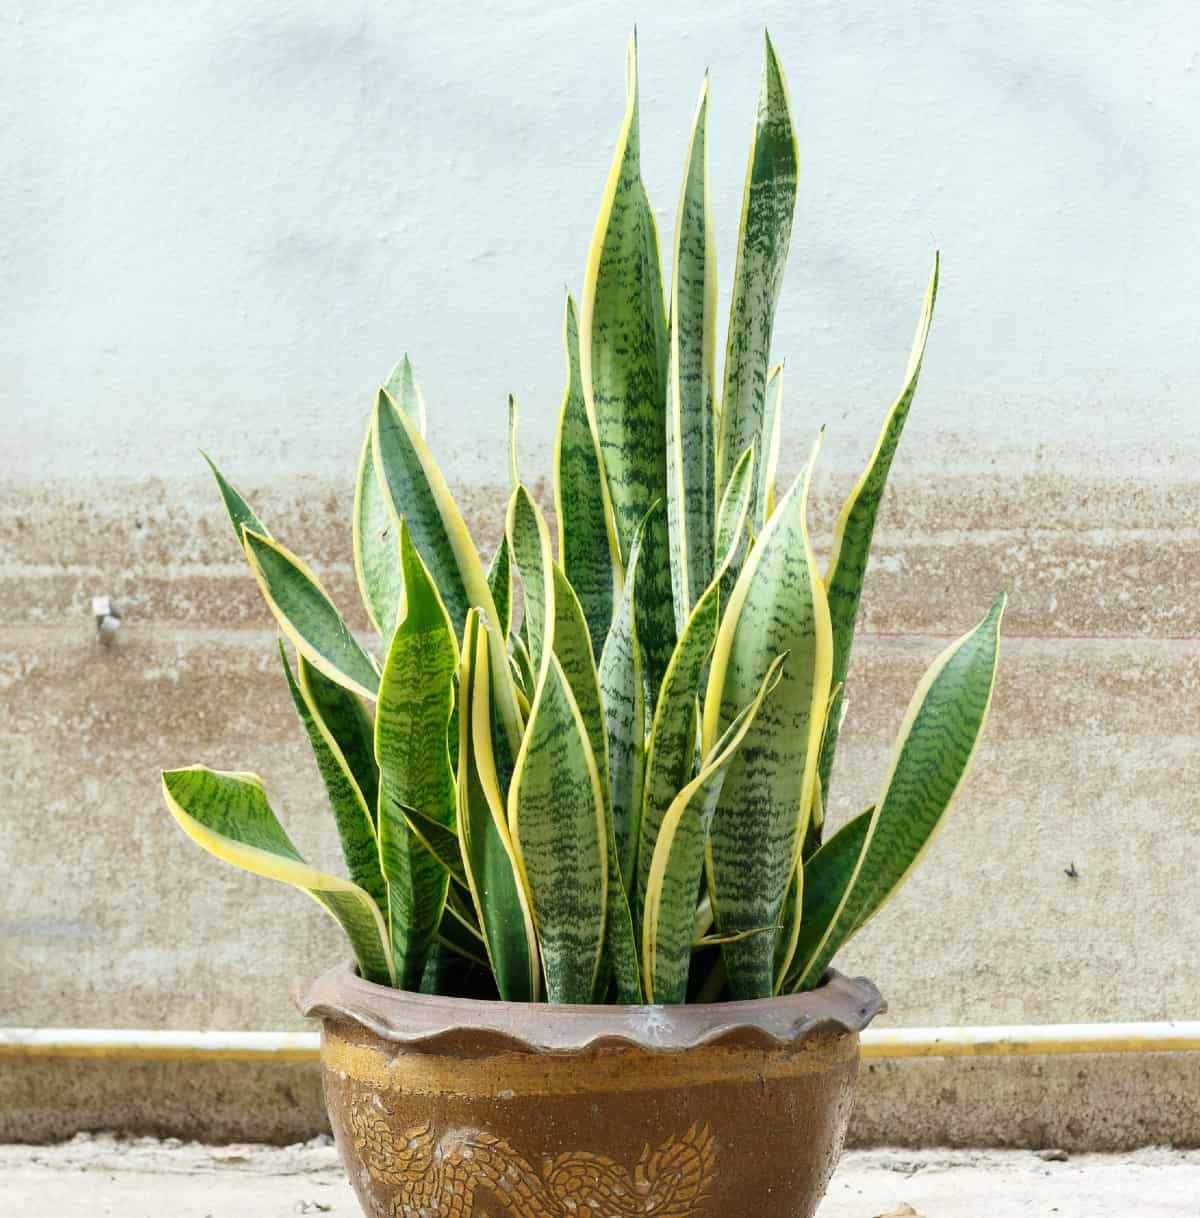 The stiff green leaves of the snake plant grow upward.